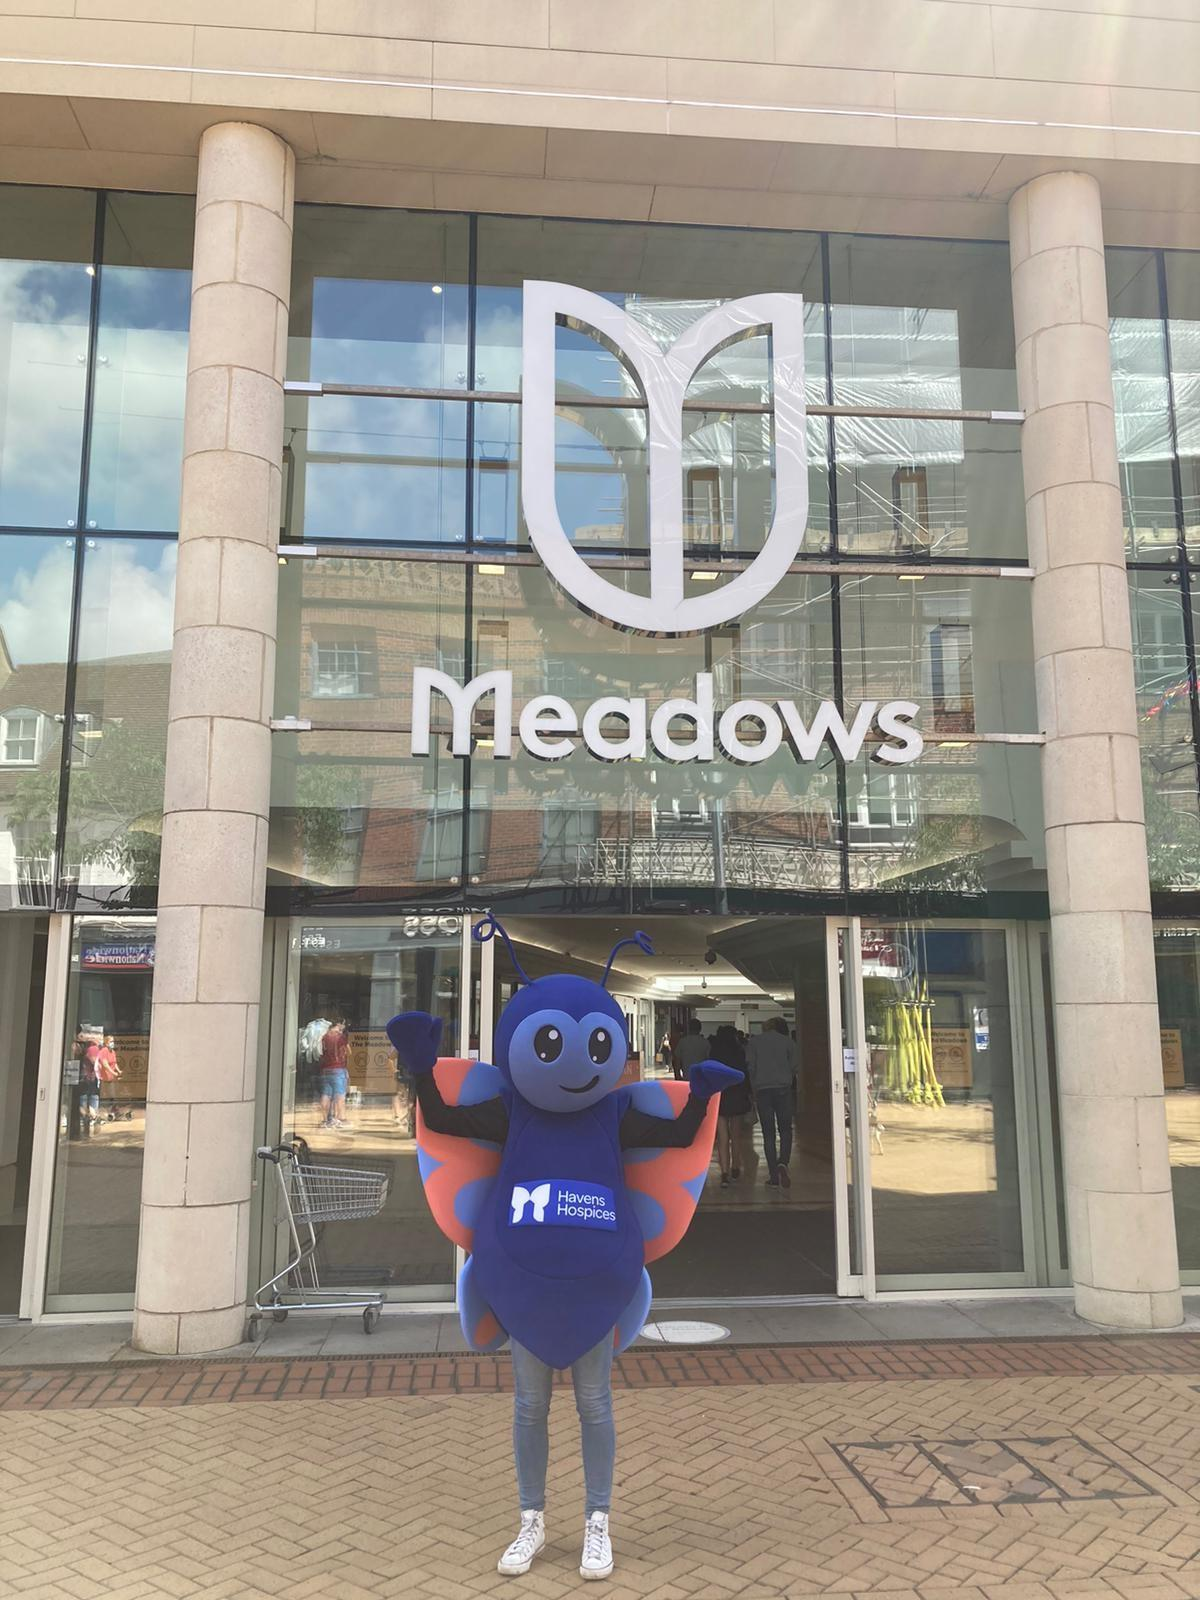 The Meadows Shopping Centre nominates their 'charity of the year'